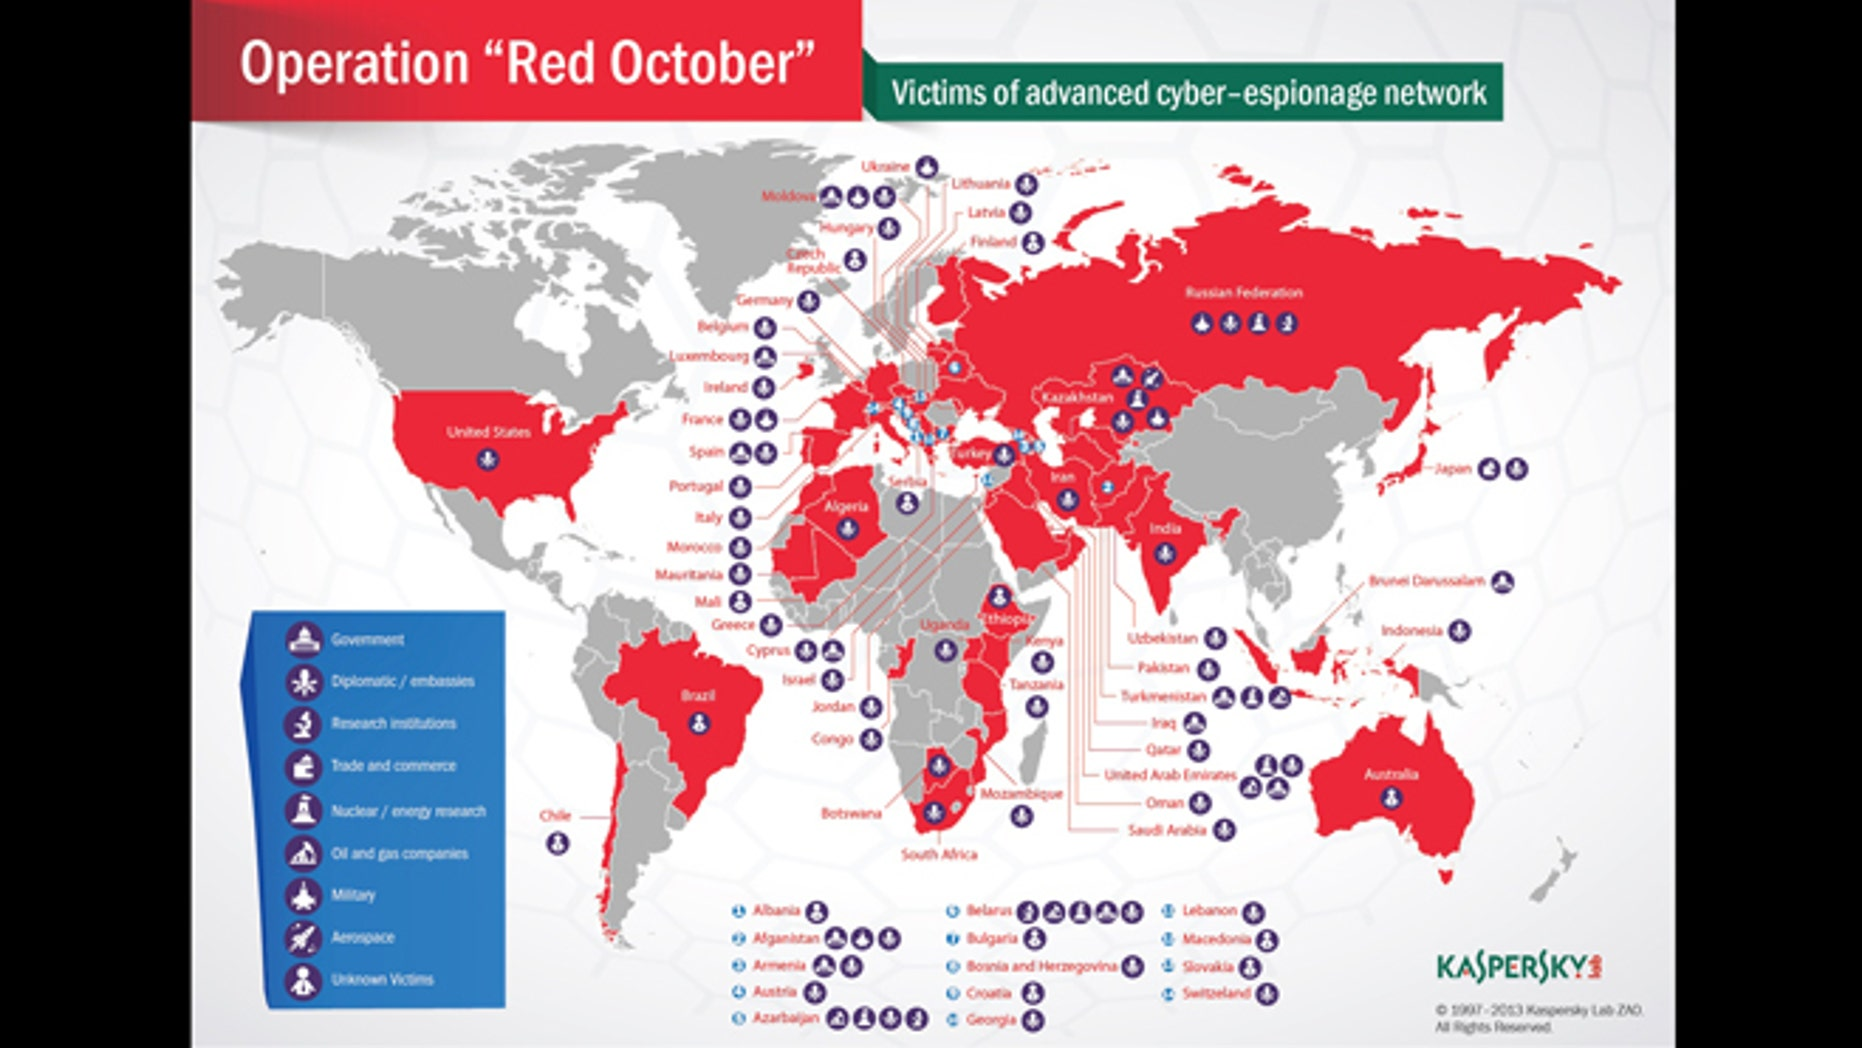 """Victims of the """"Red October"""" attackers, which were primarily diplomatic/government organizations, scientific research institutions, nuclear and energy groups, and targets in the trade and aerospace industries."""